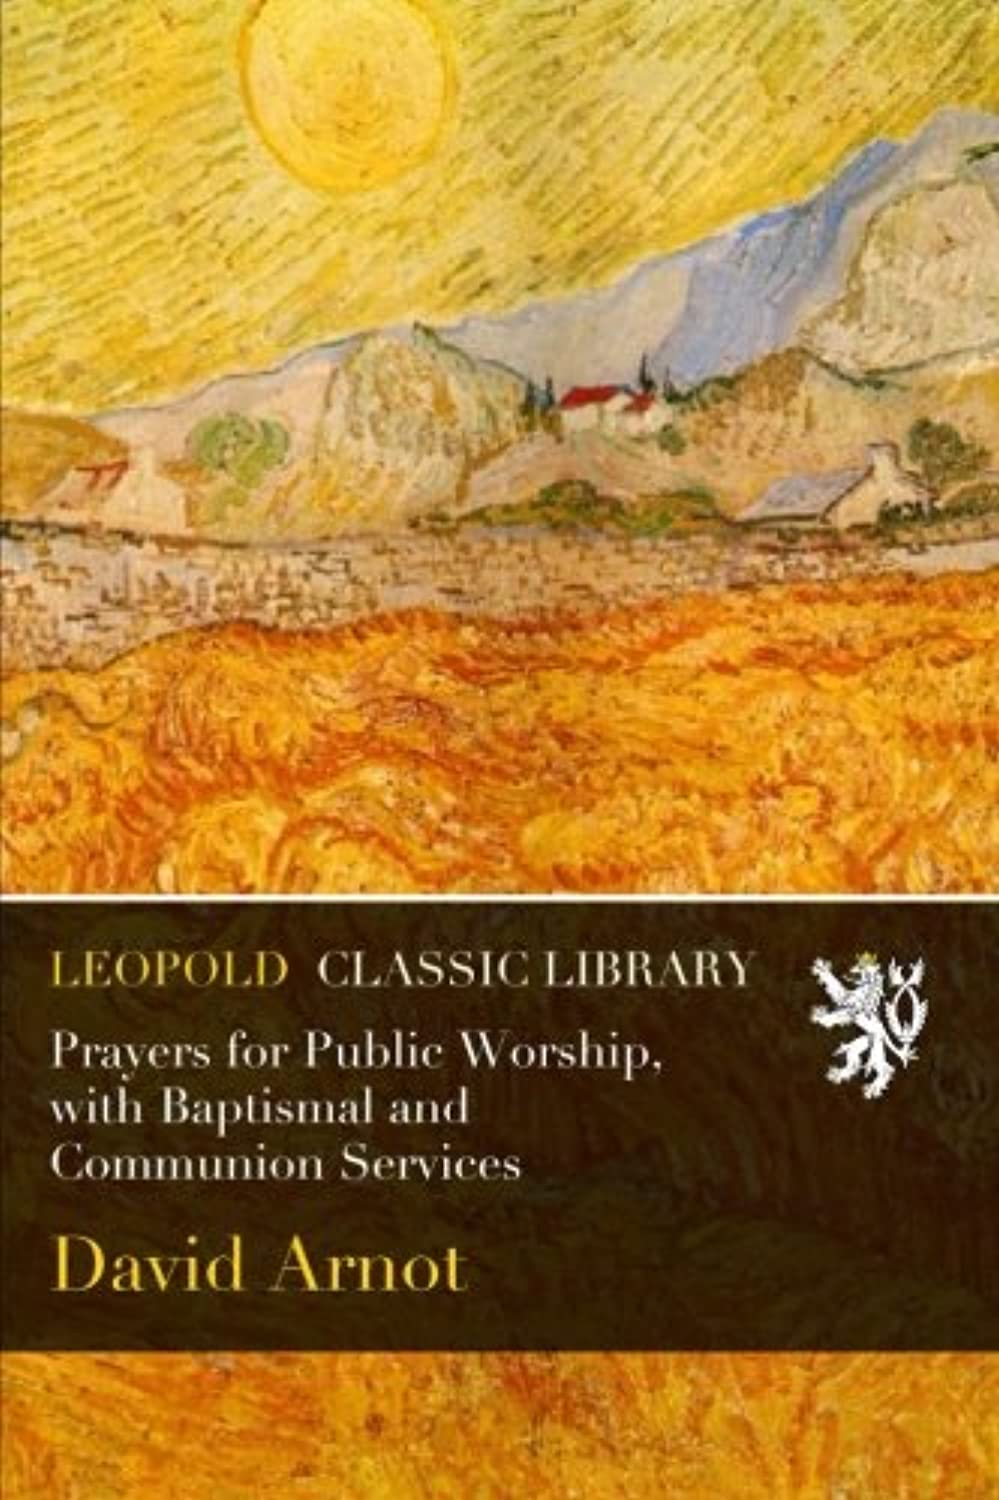 Prayers for Public Worship, with Baptismal and Communion Services